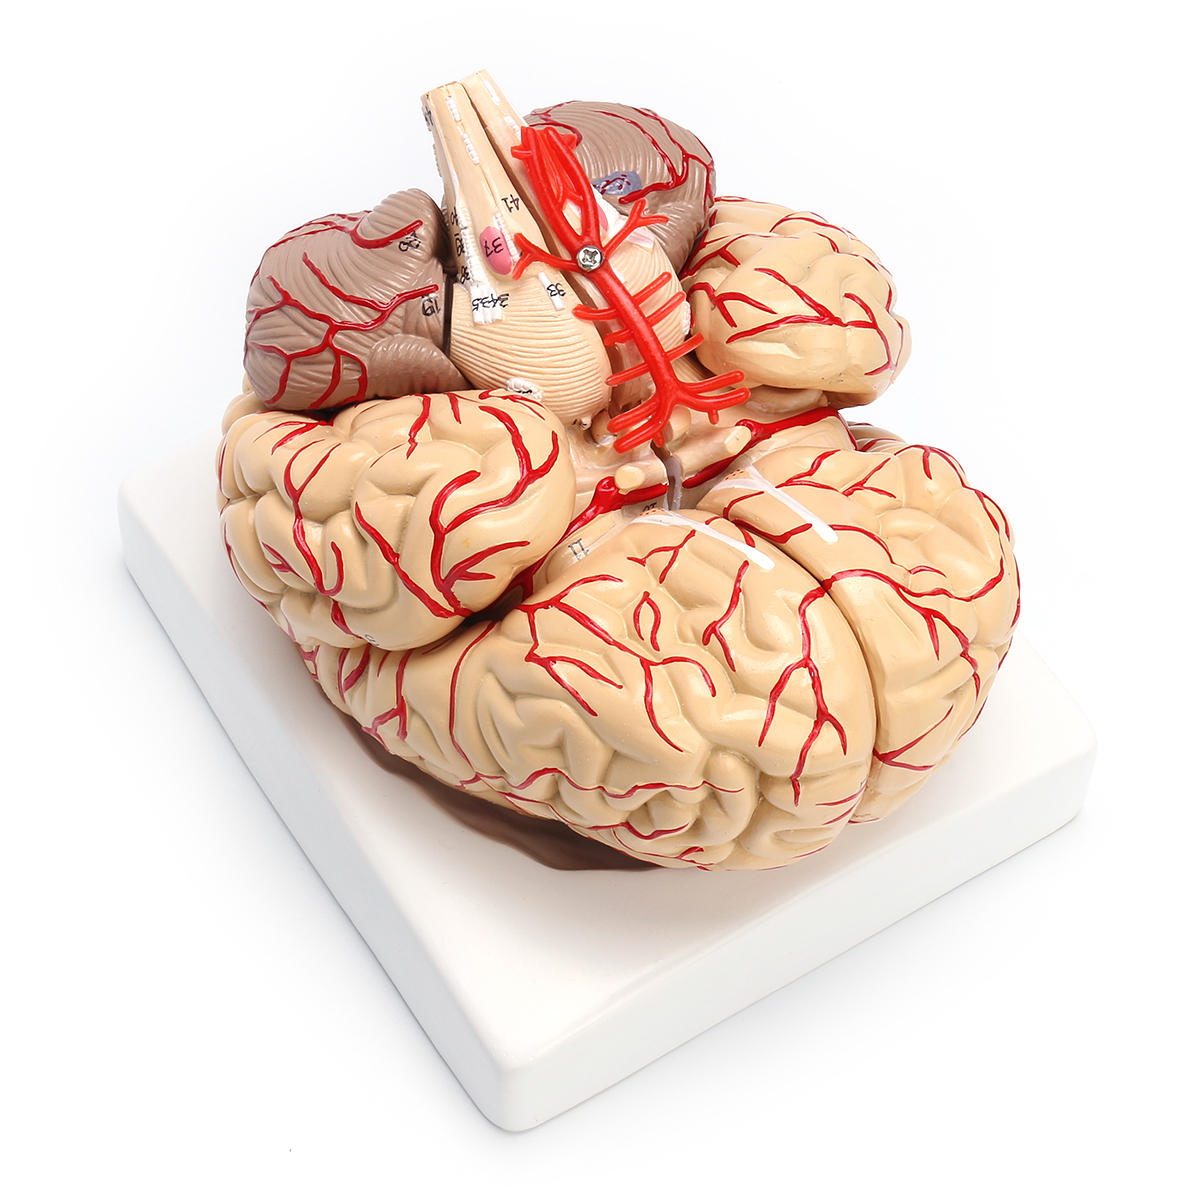 11 Life Size Scientific Human Brain Arteries Anatomical Model Pro